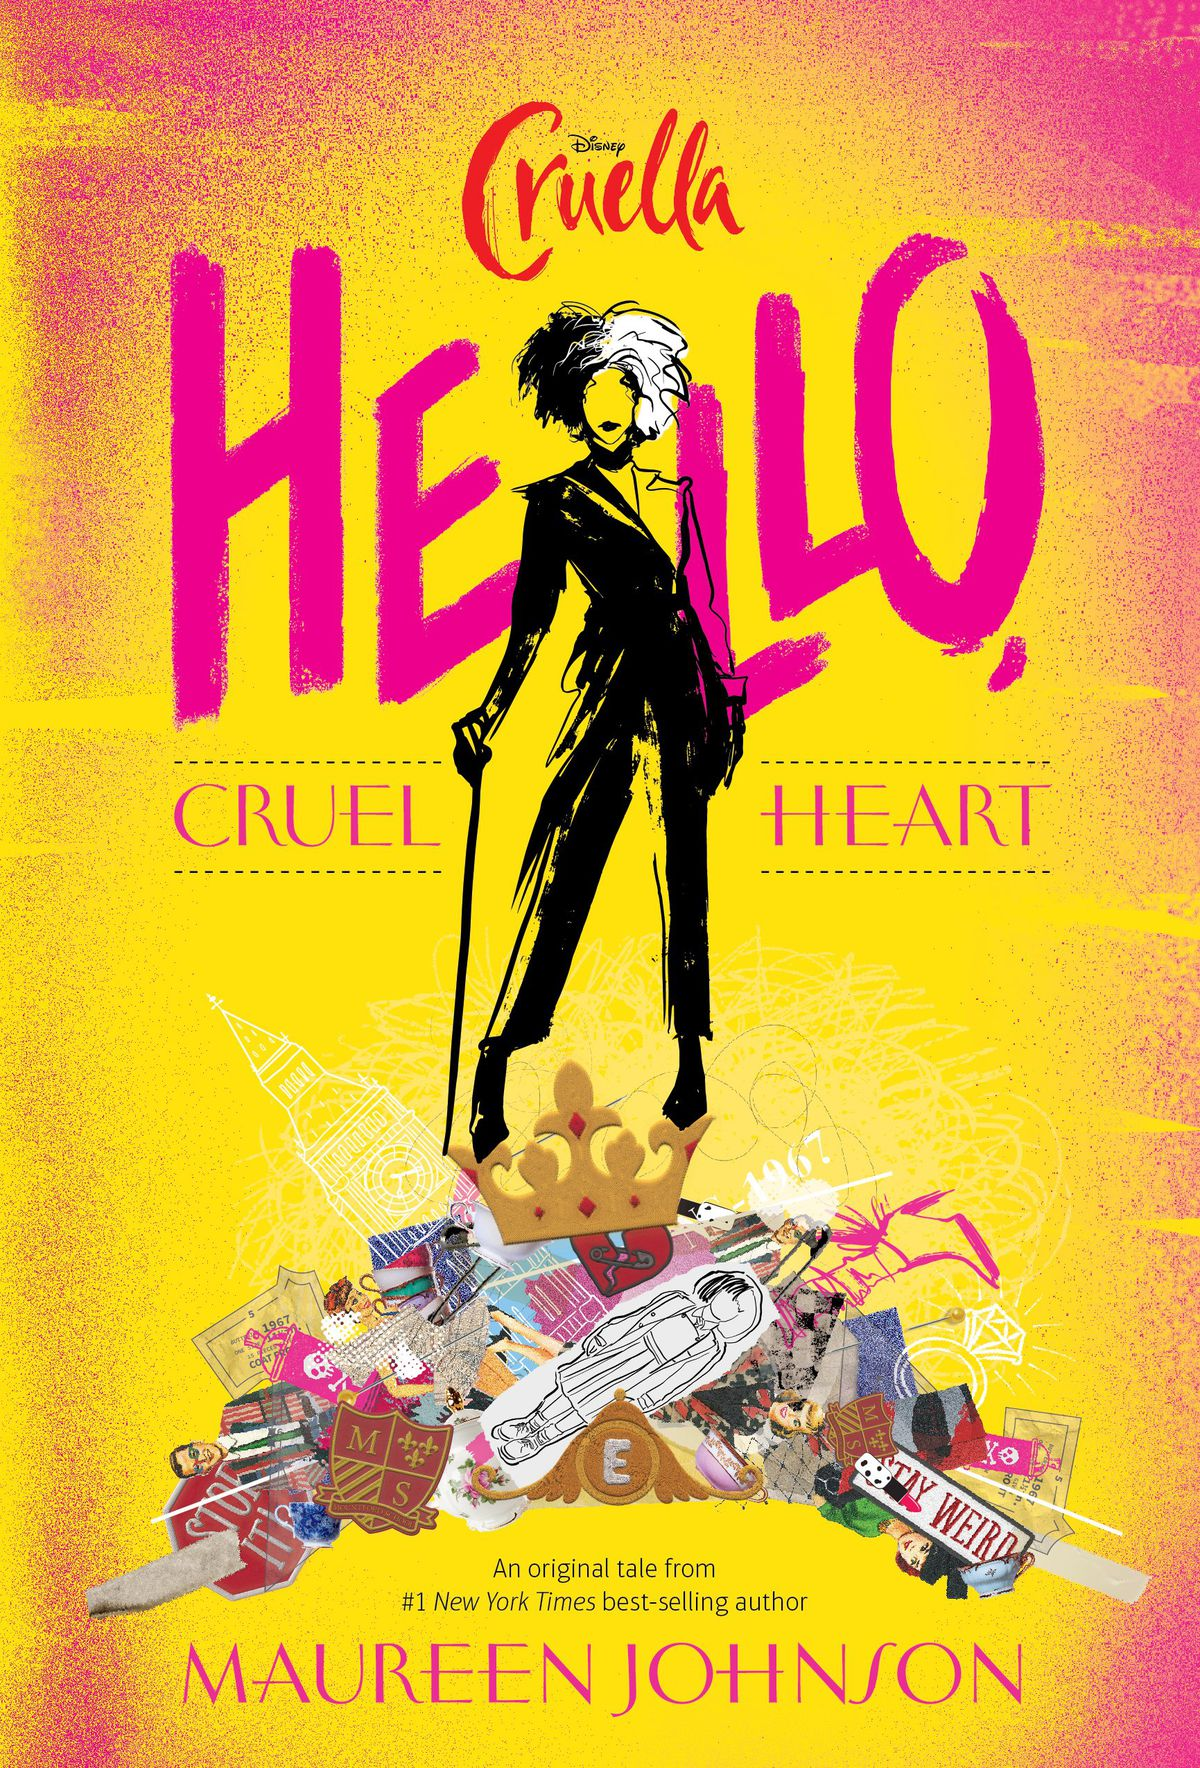 the cover of Hello, Cruel Heart, featuring Cruella De Vil on a pile of clutter against a dramatic yellow background